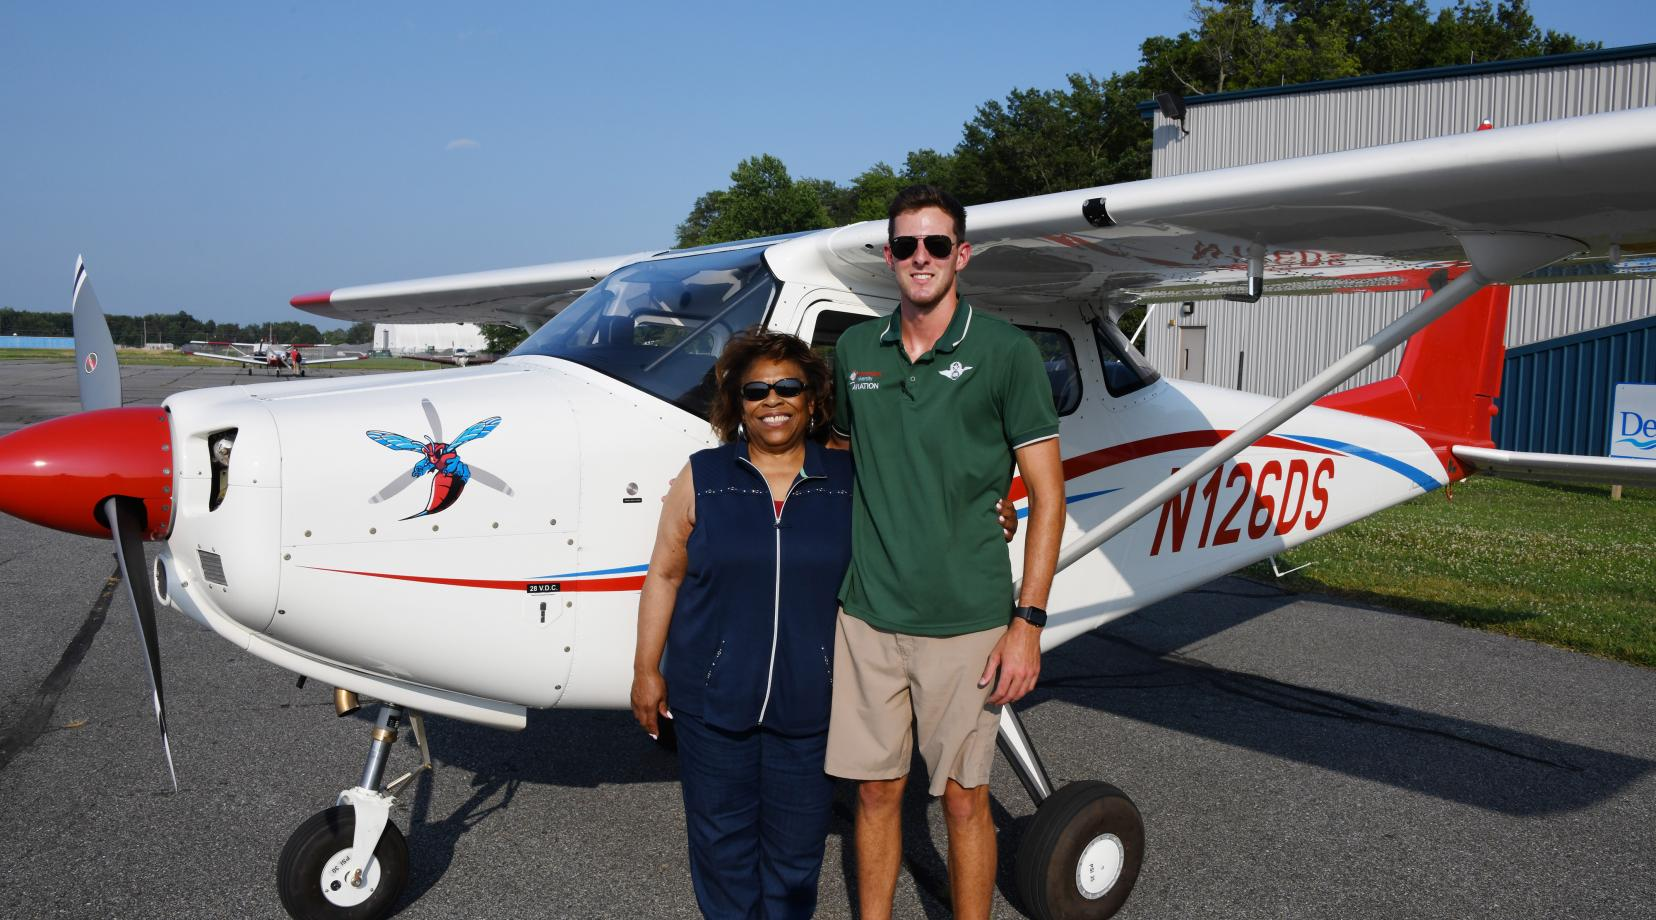 DSU President Wilma Mishoe poses with Aviation Program graduate and current Instructor B. Lane DeLeon after flying into the Delaware Air Park on the first aircraft of a new fleet planes for the University.